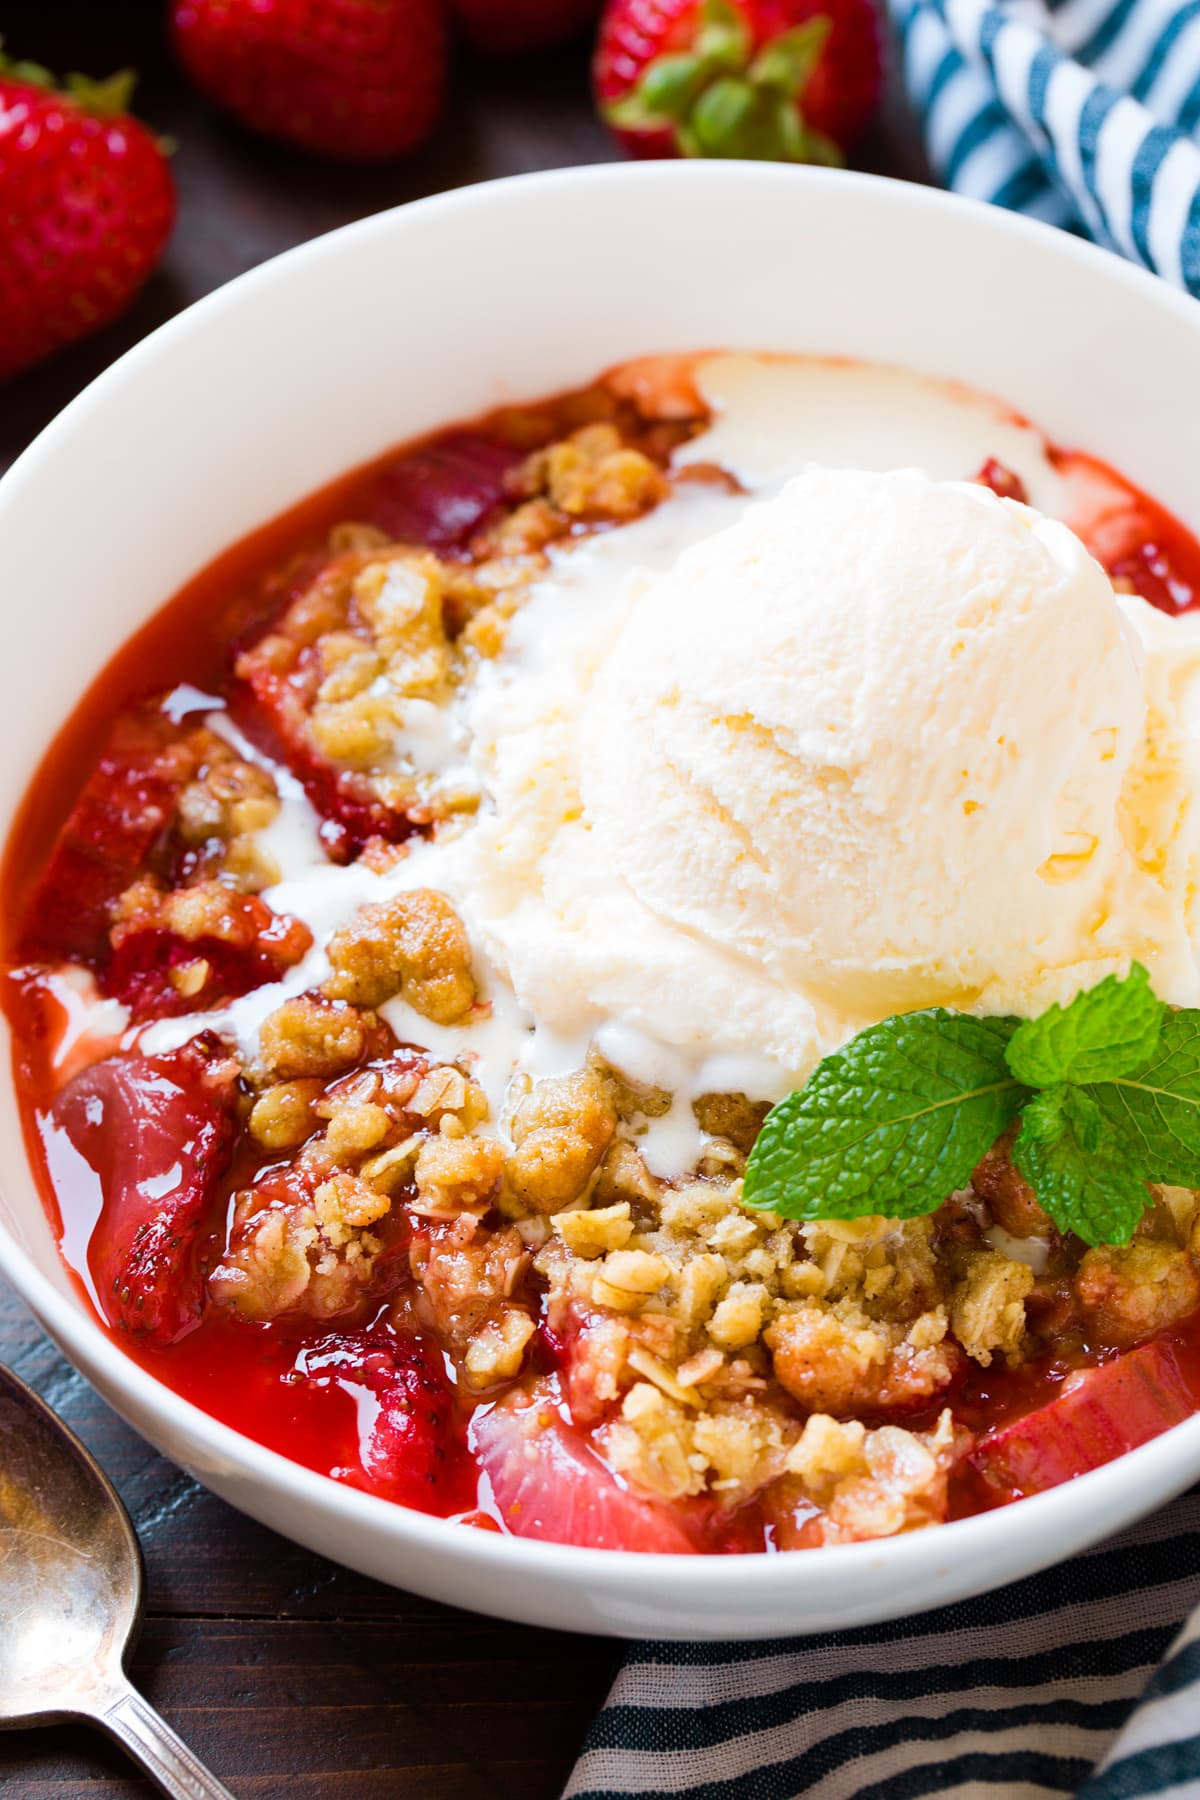 Strawberry Rhubarb Crisp in a single serving bowl topped with vanilla ice cream.